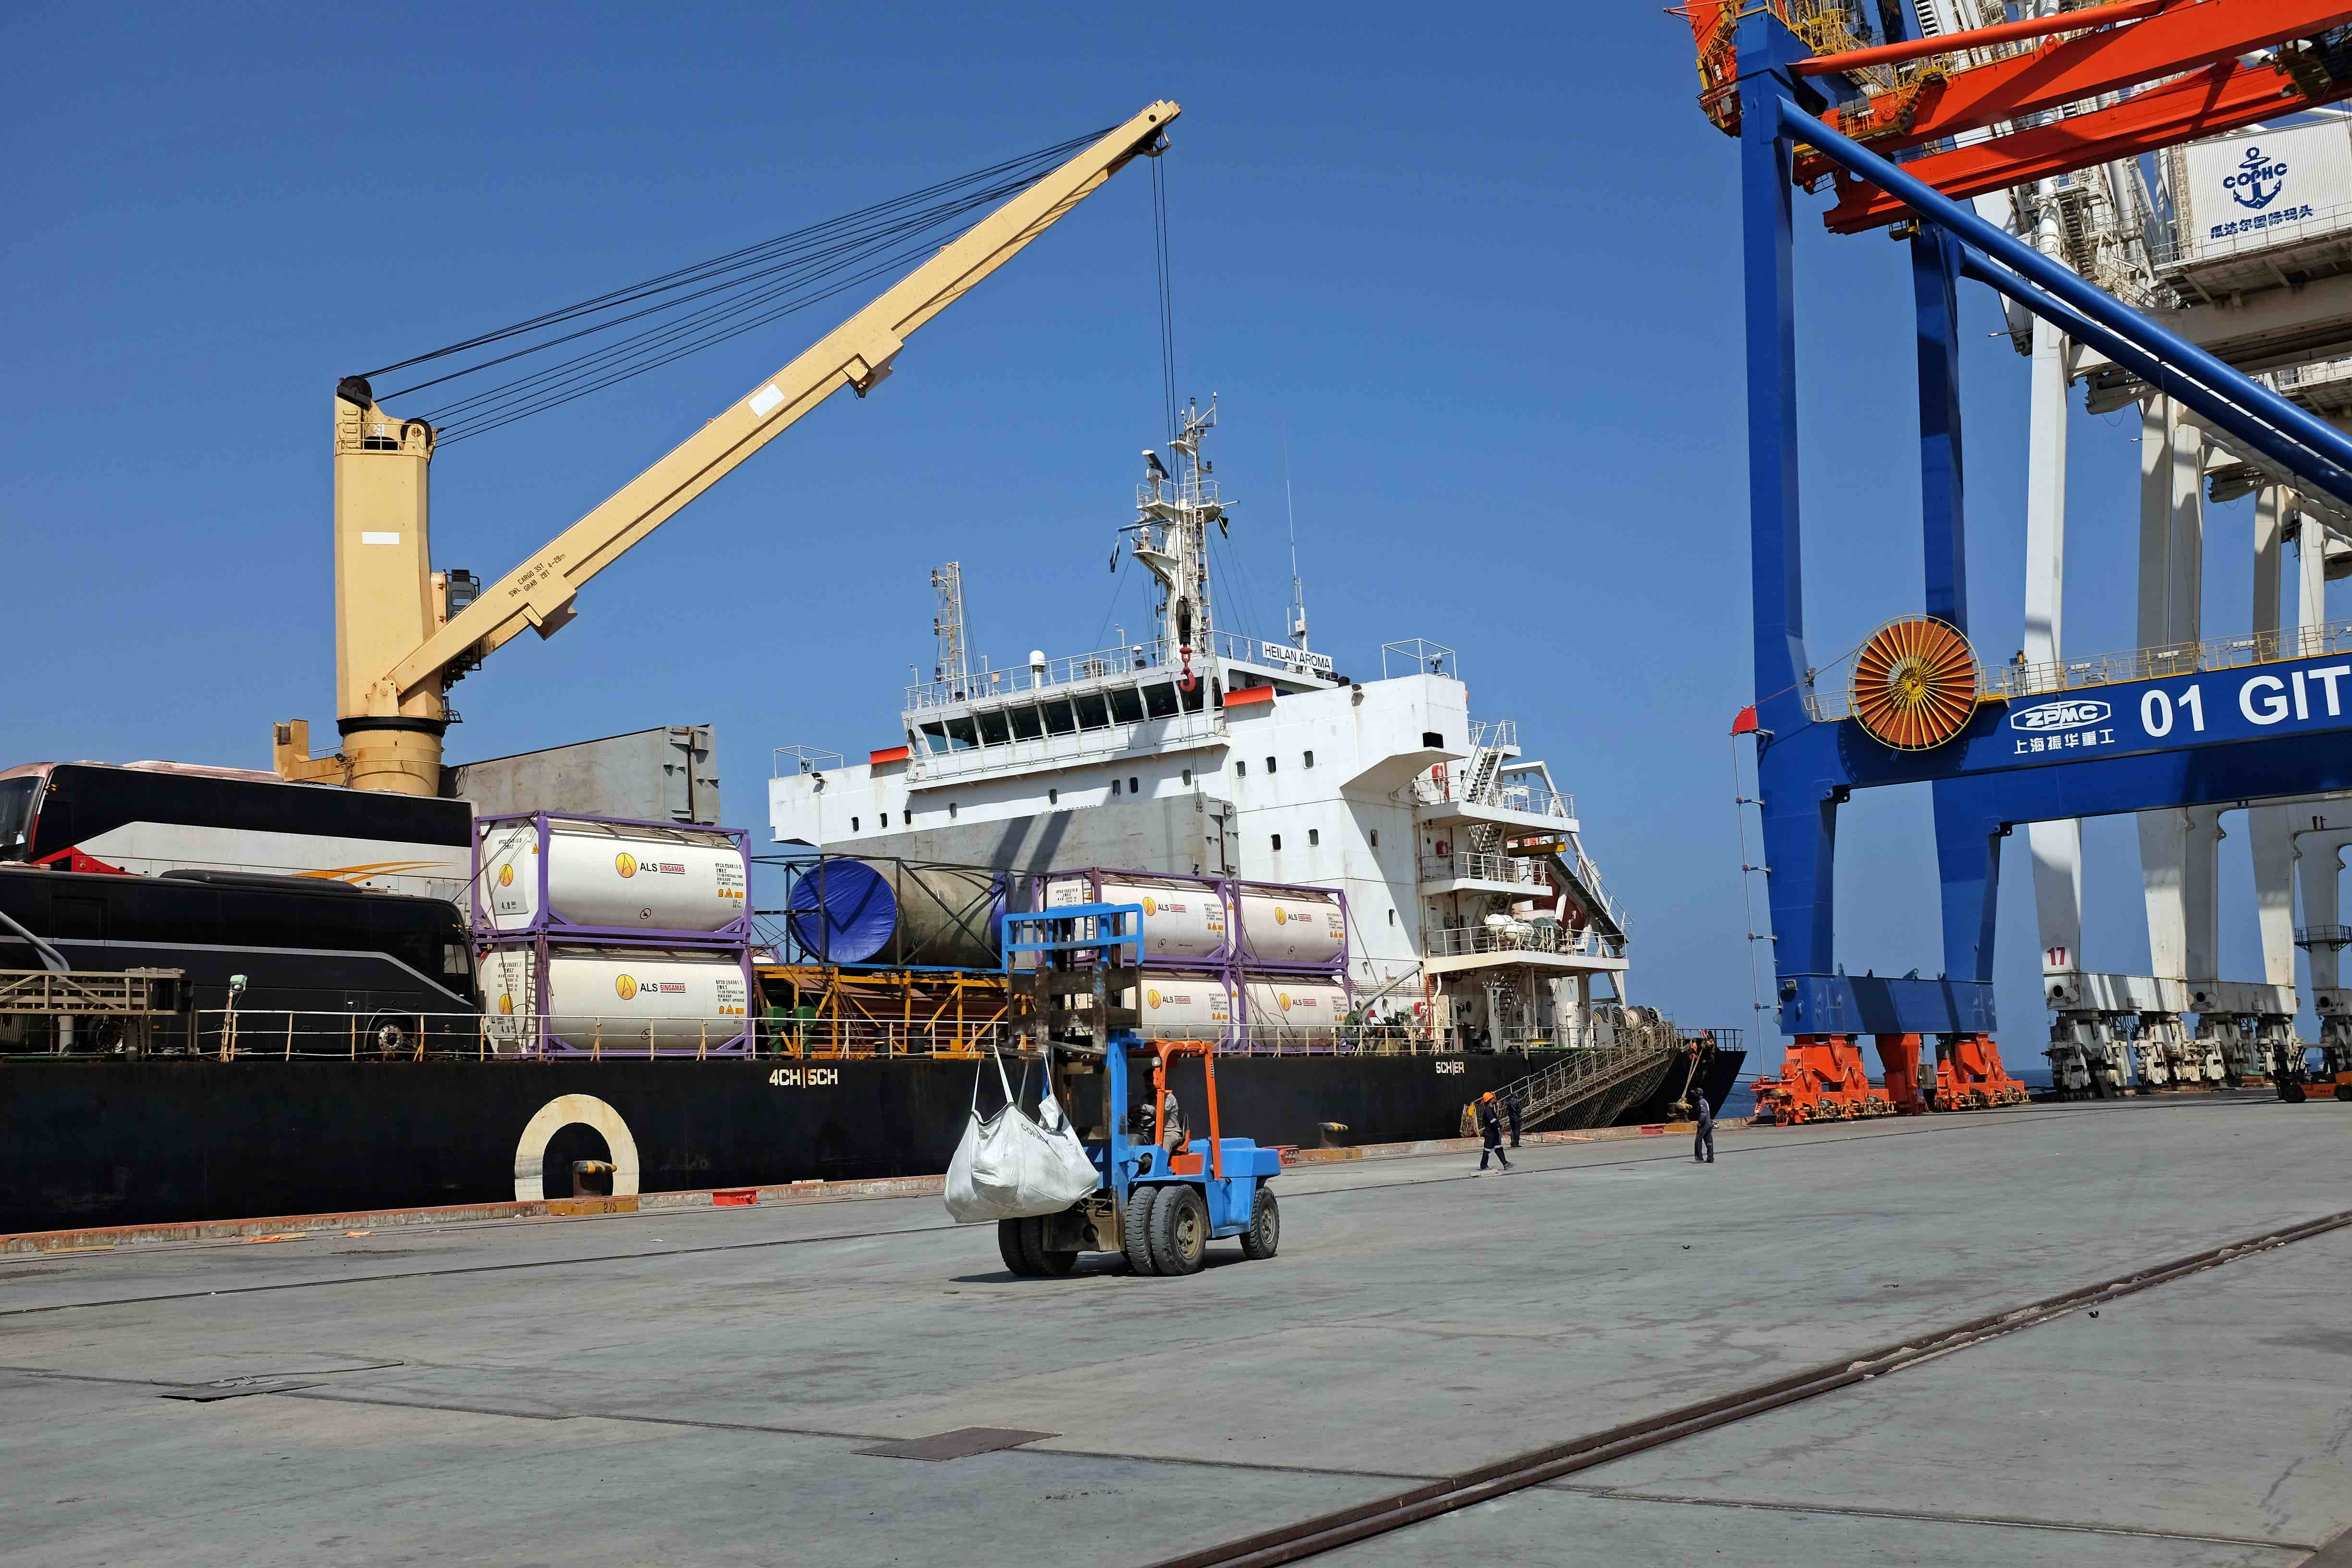 China Gives Large Amounts of Aid to Pakistani Town Gwadar; Hopes to Extend Maritime Reach